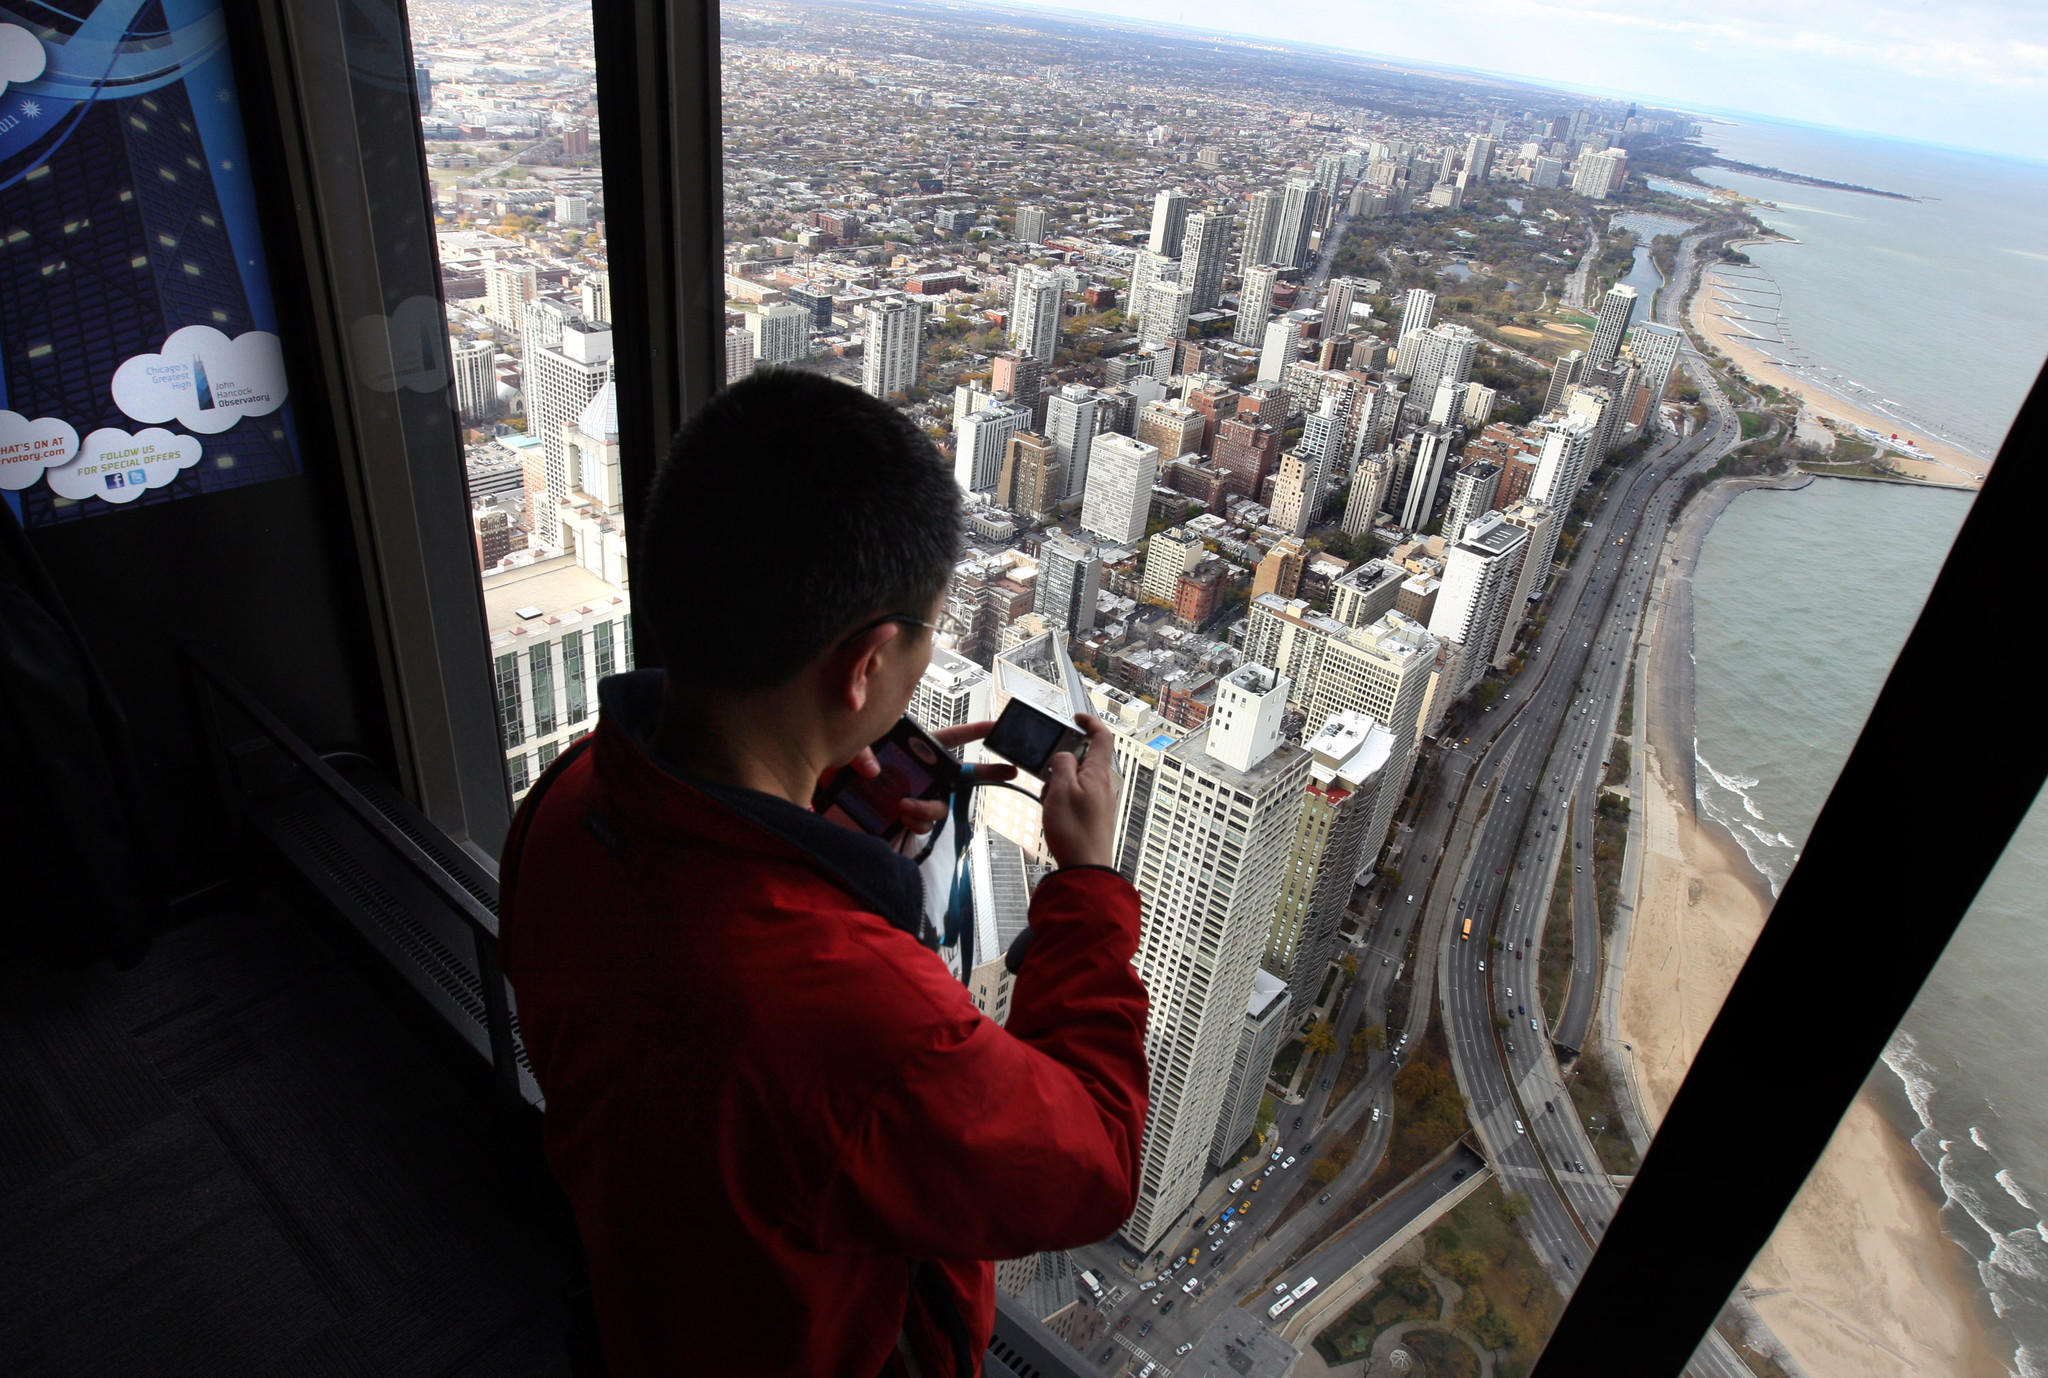 A tourist aims his camera out the window towards the north side of the city at the John Hancock observatory.